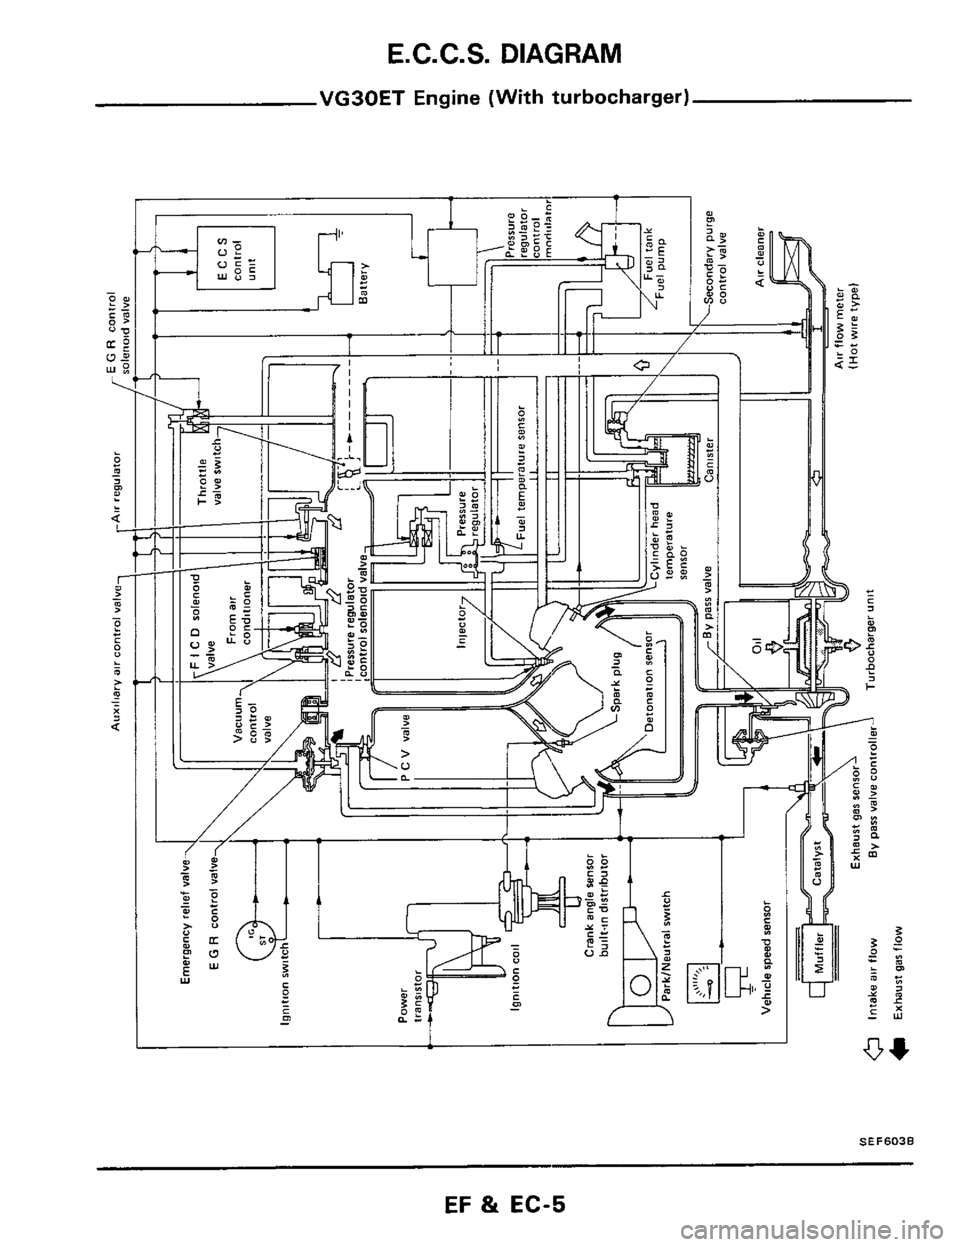 NISSAN 300ZX 1984 Z31 Engine Fuel And Emission Control System Workshop Manual, Page 5